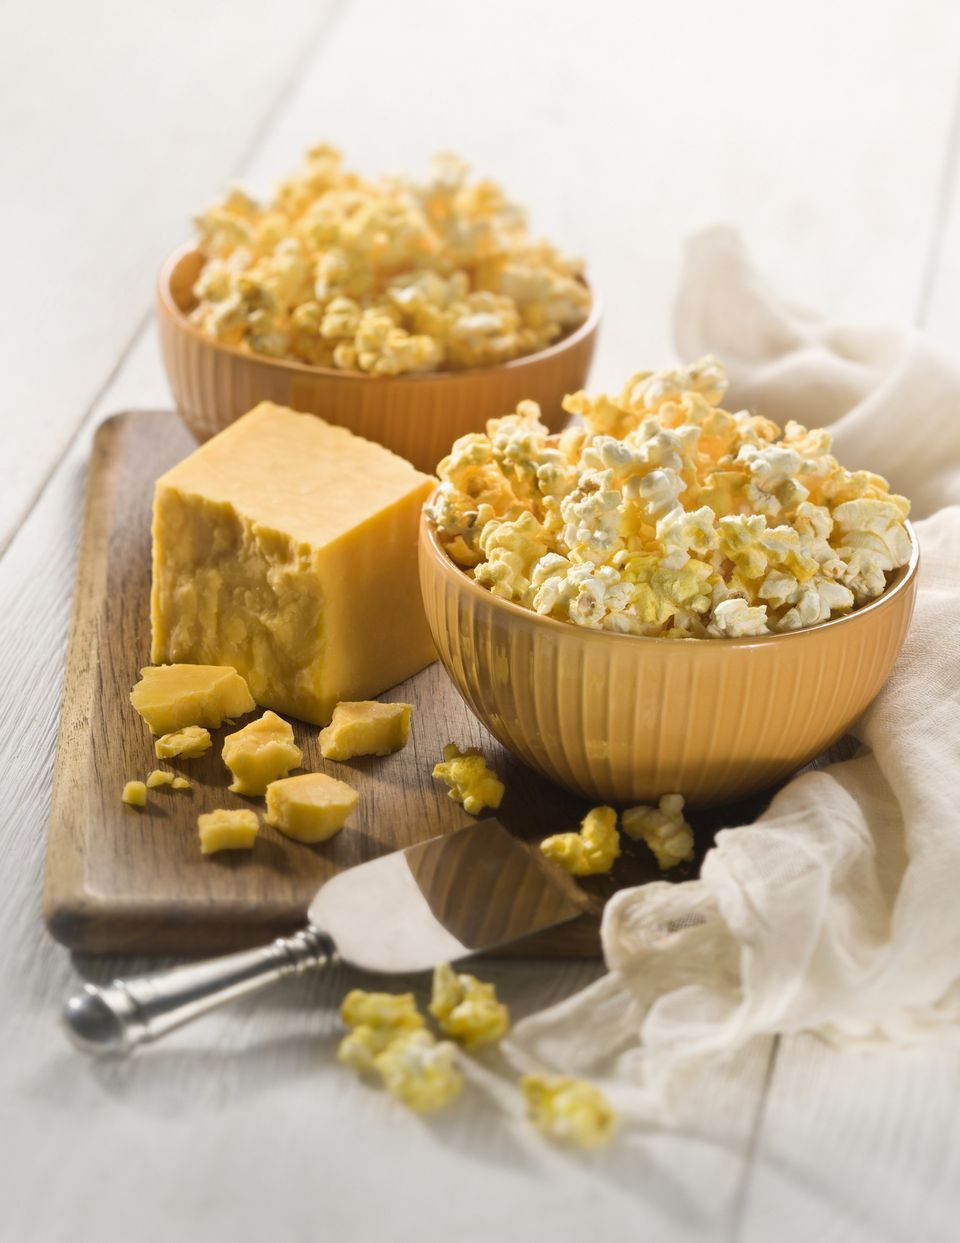 Bowls of cheese flavored popcorn